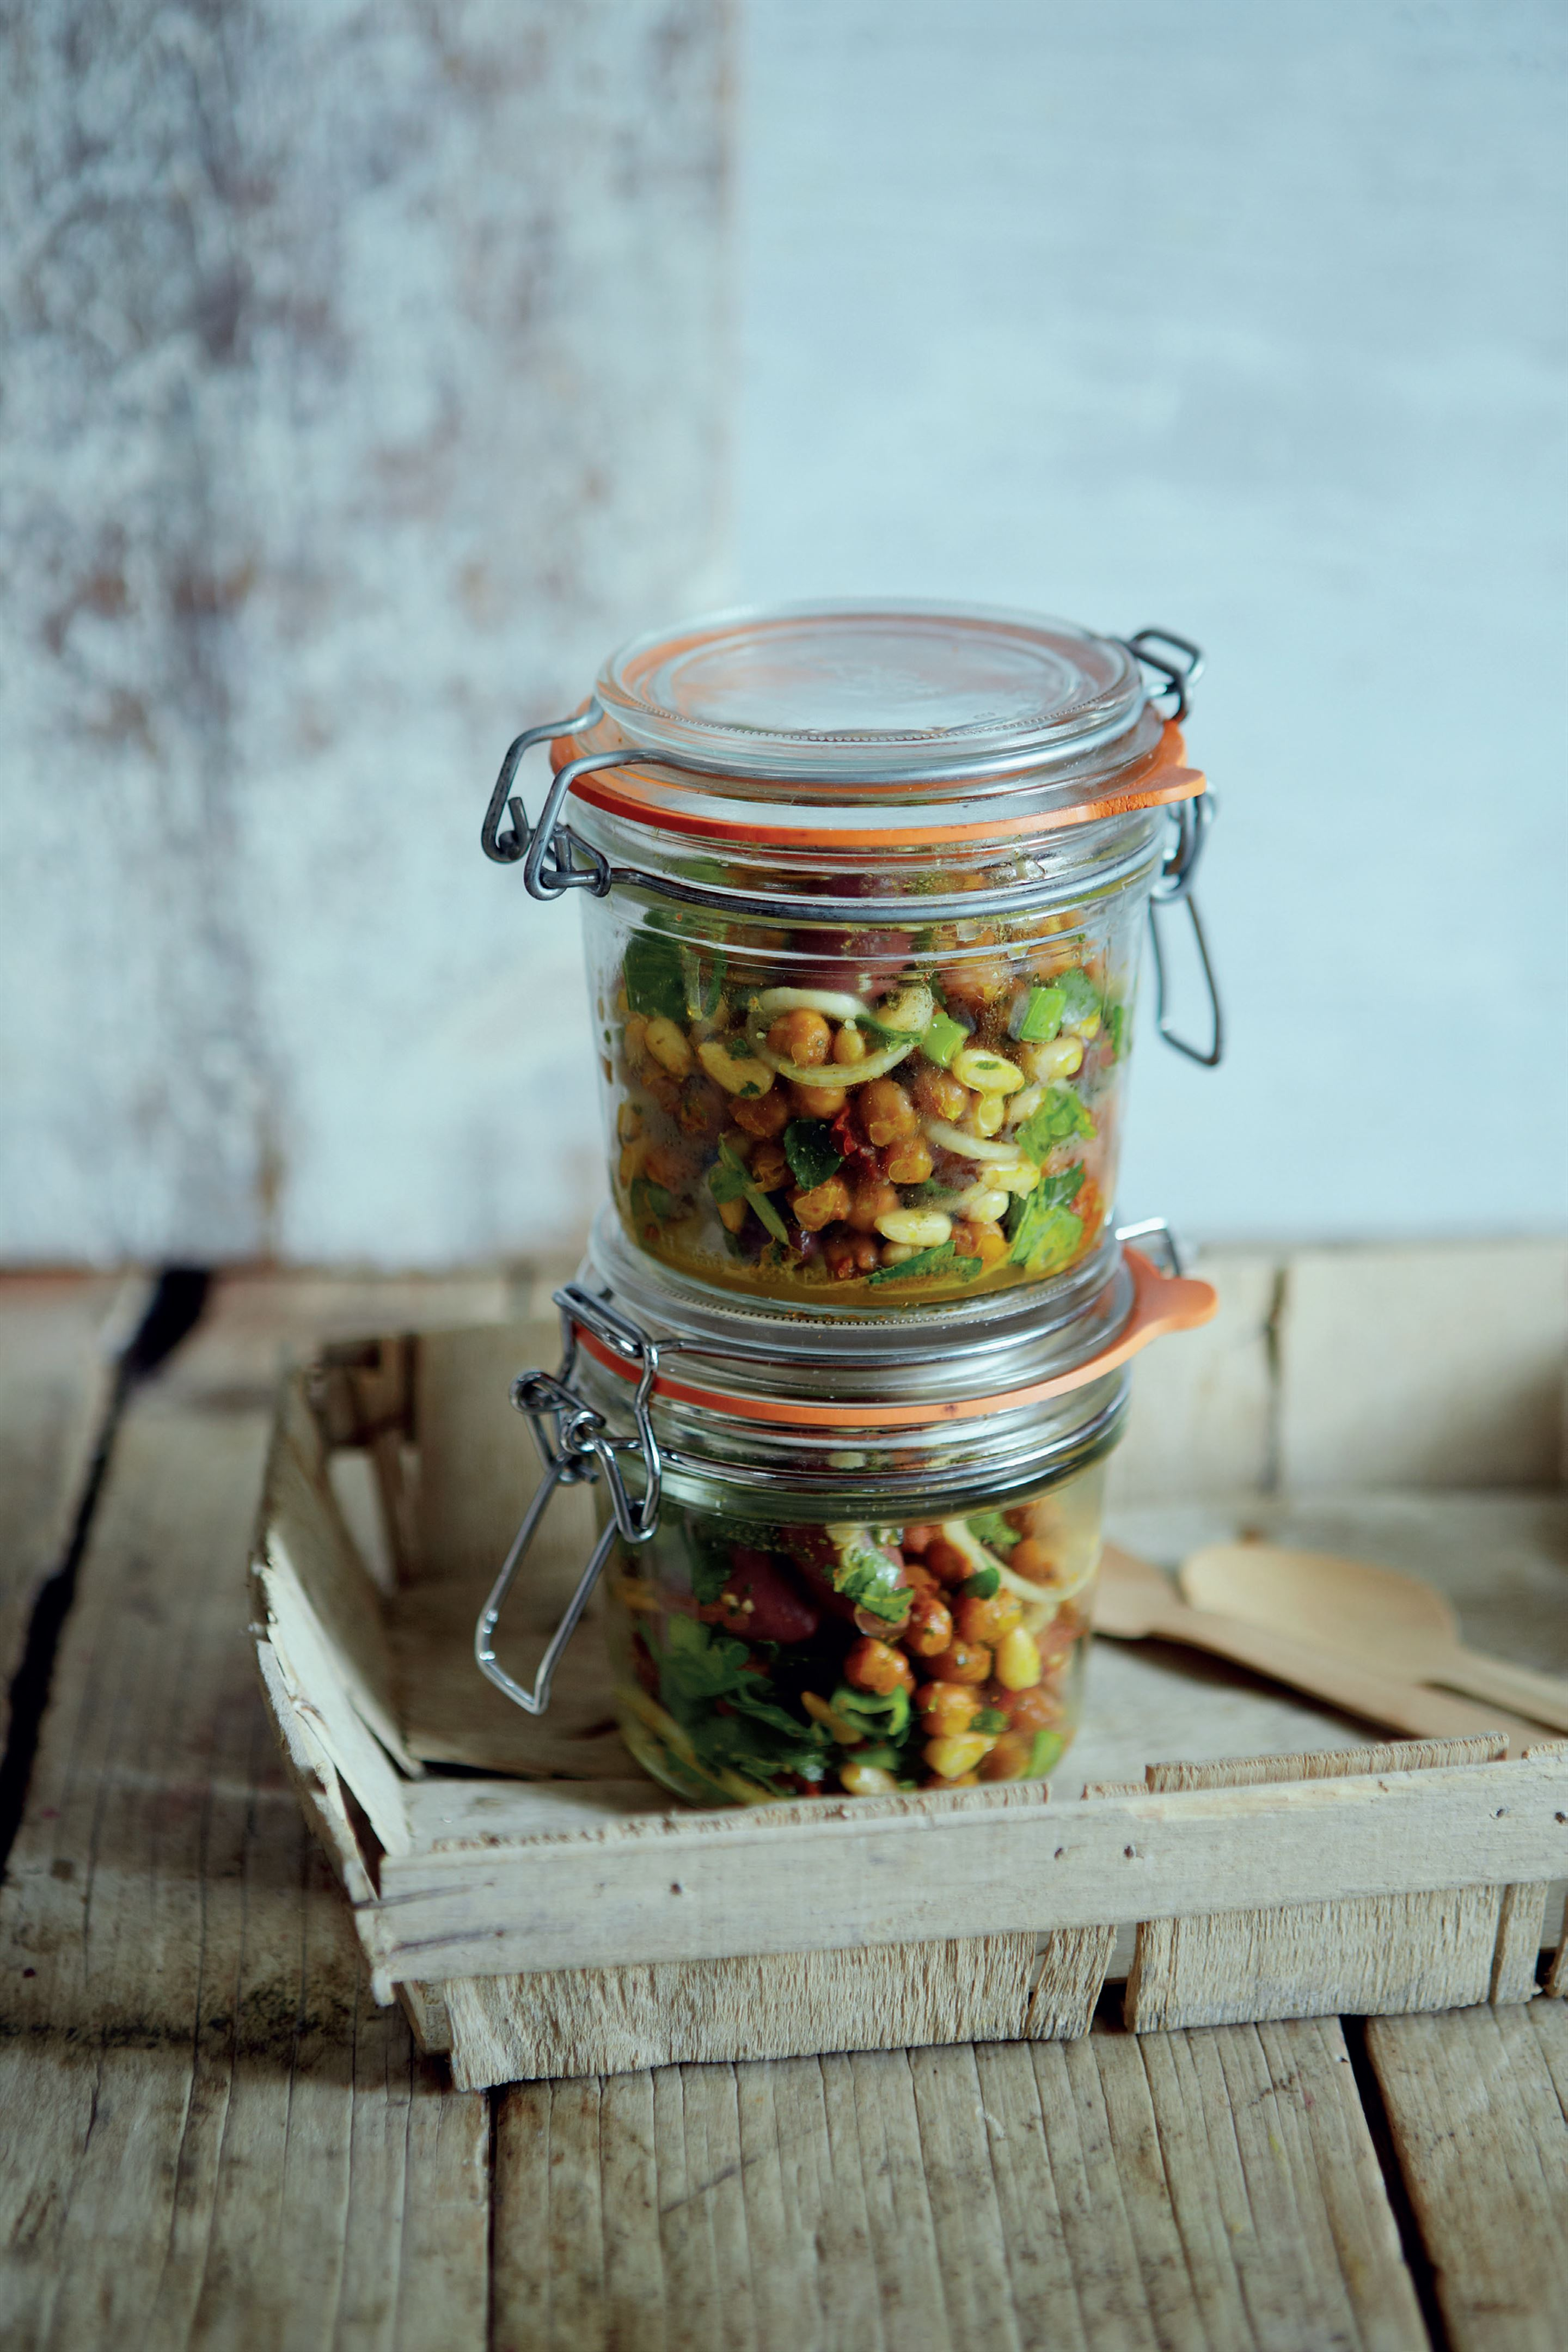 Roasted chickpea and sun-dried tomato salad with herb dressing